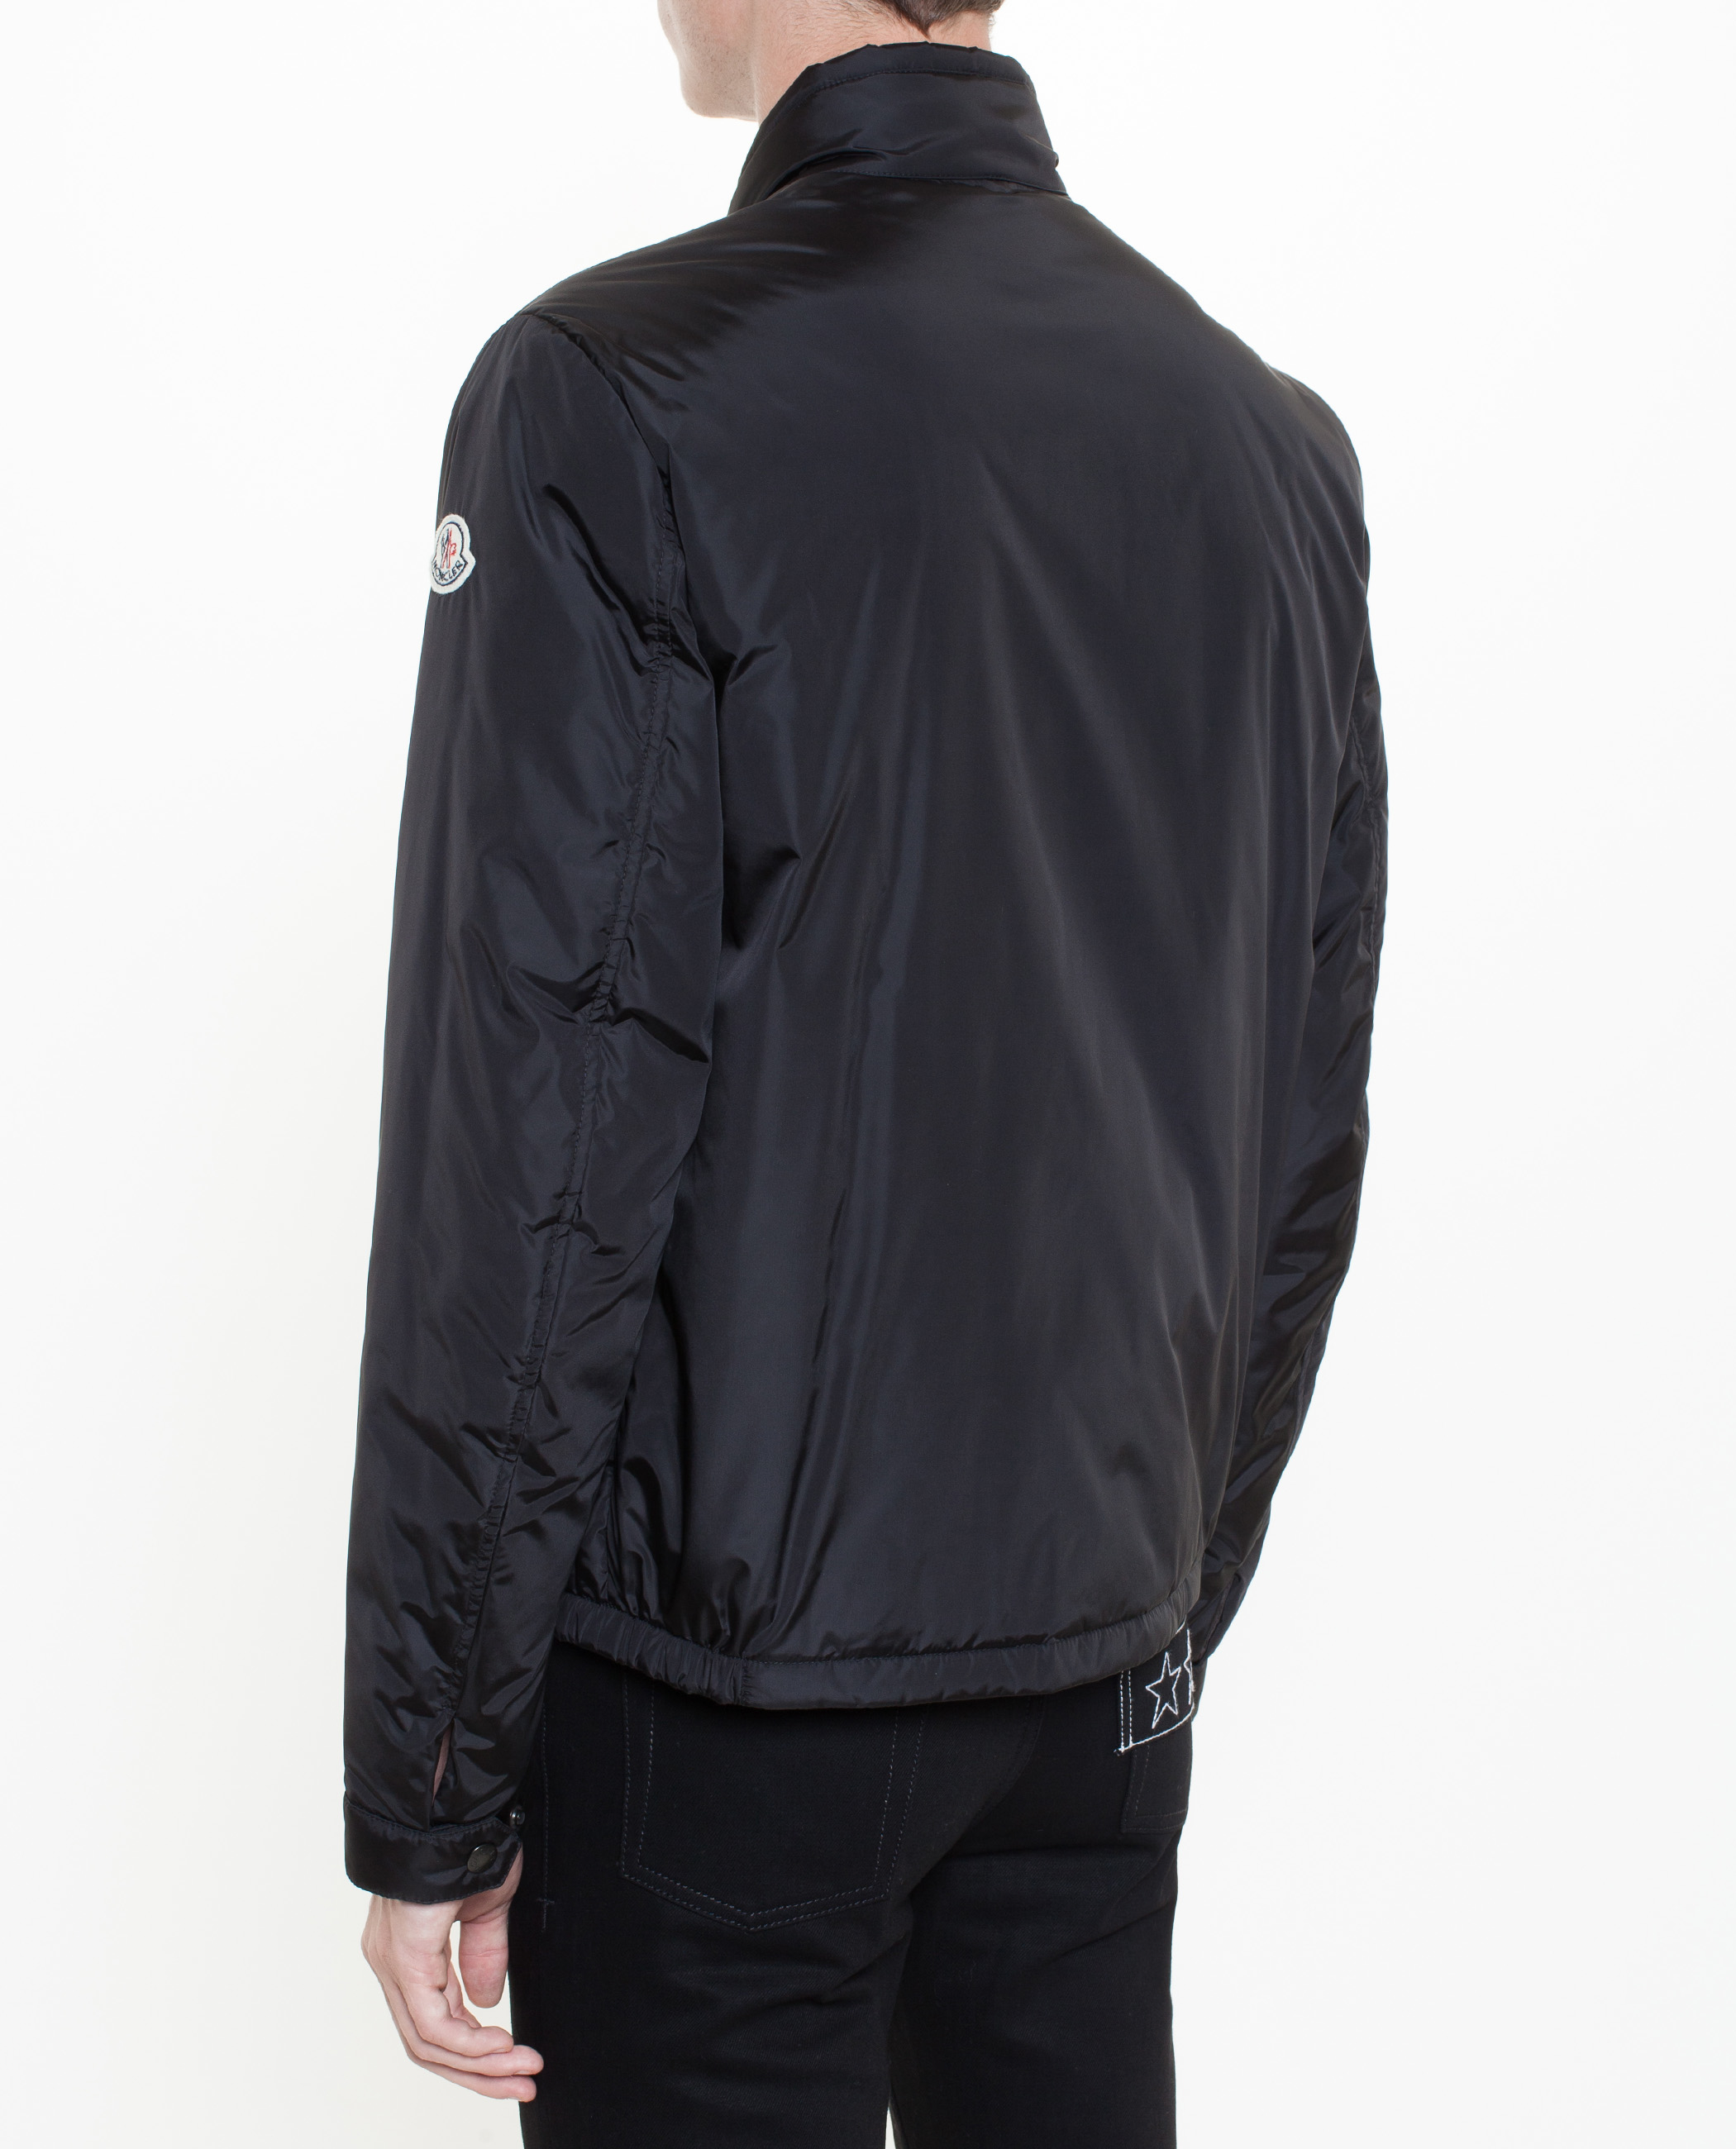 moncler berard jacket in black for men lyst. Black Bedroom Furniture Sets. Home Design Ideas